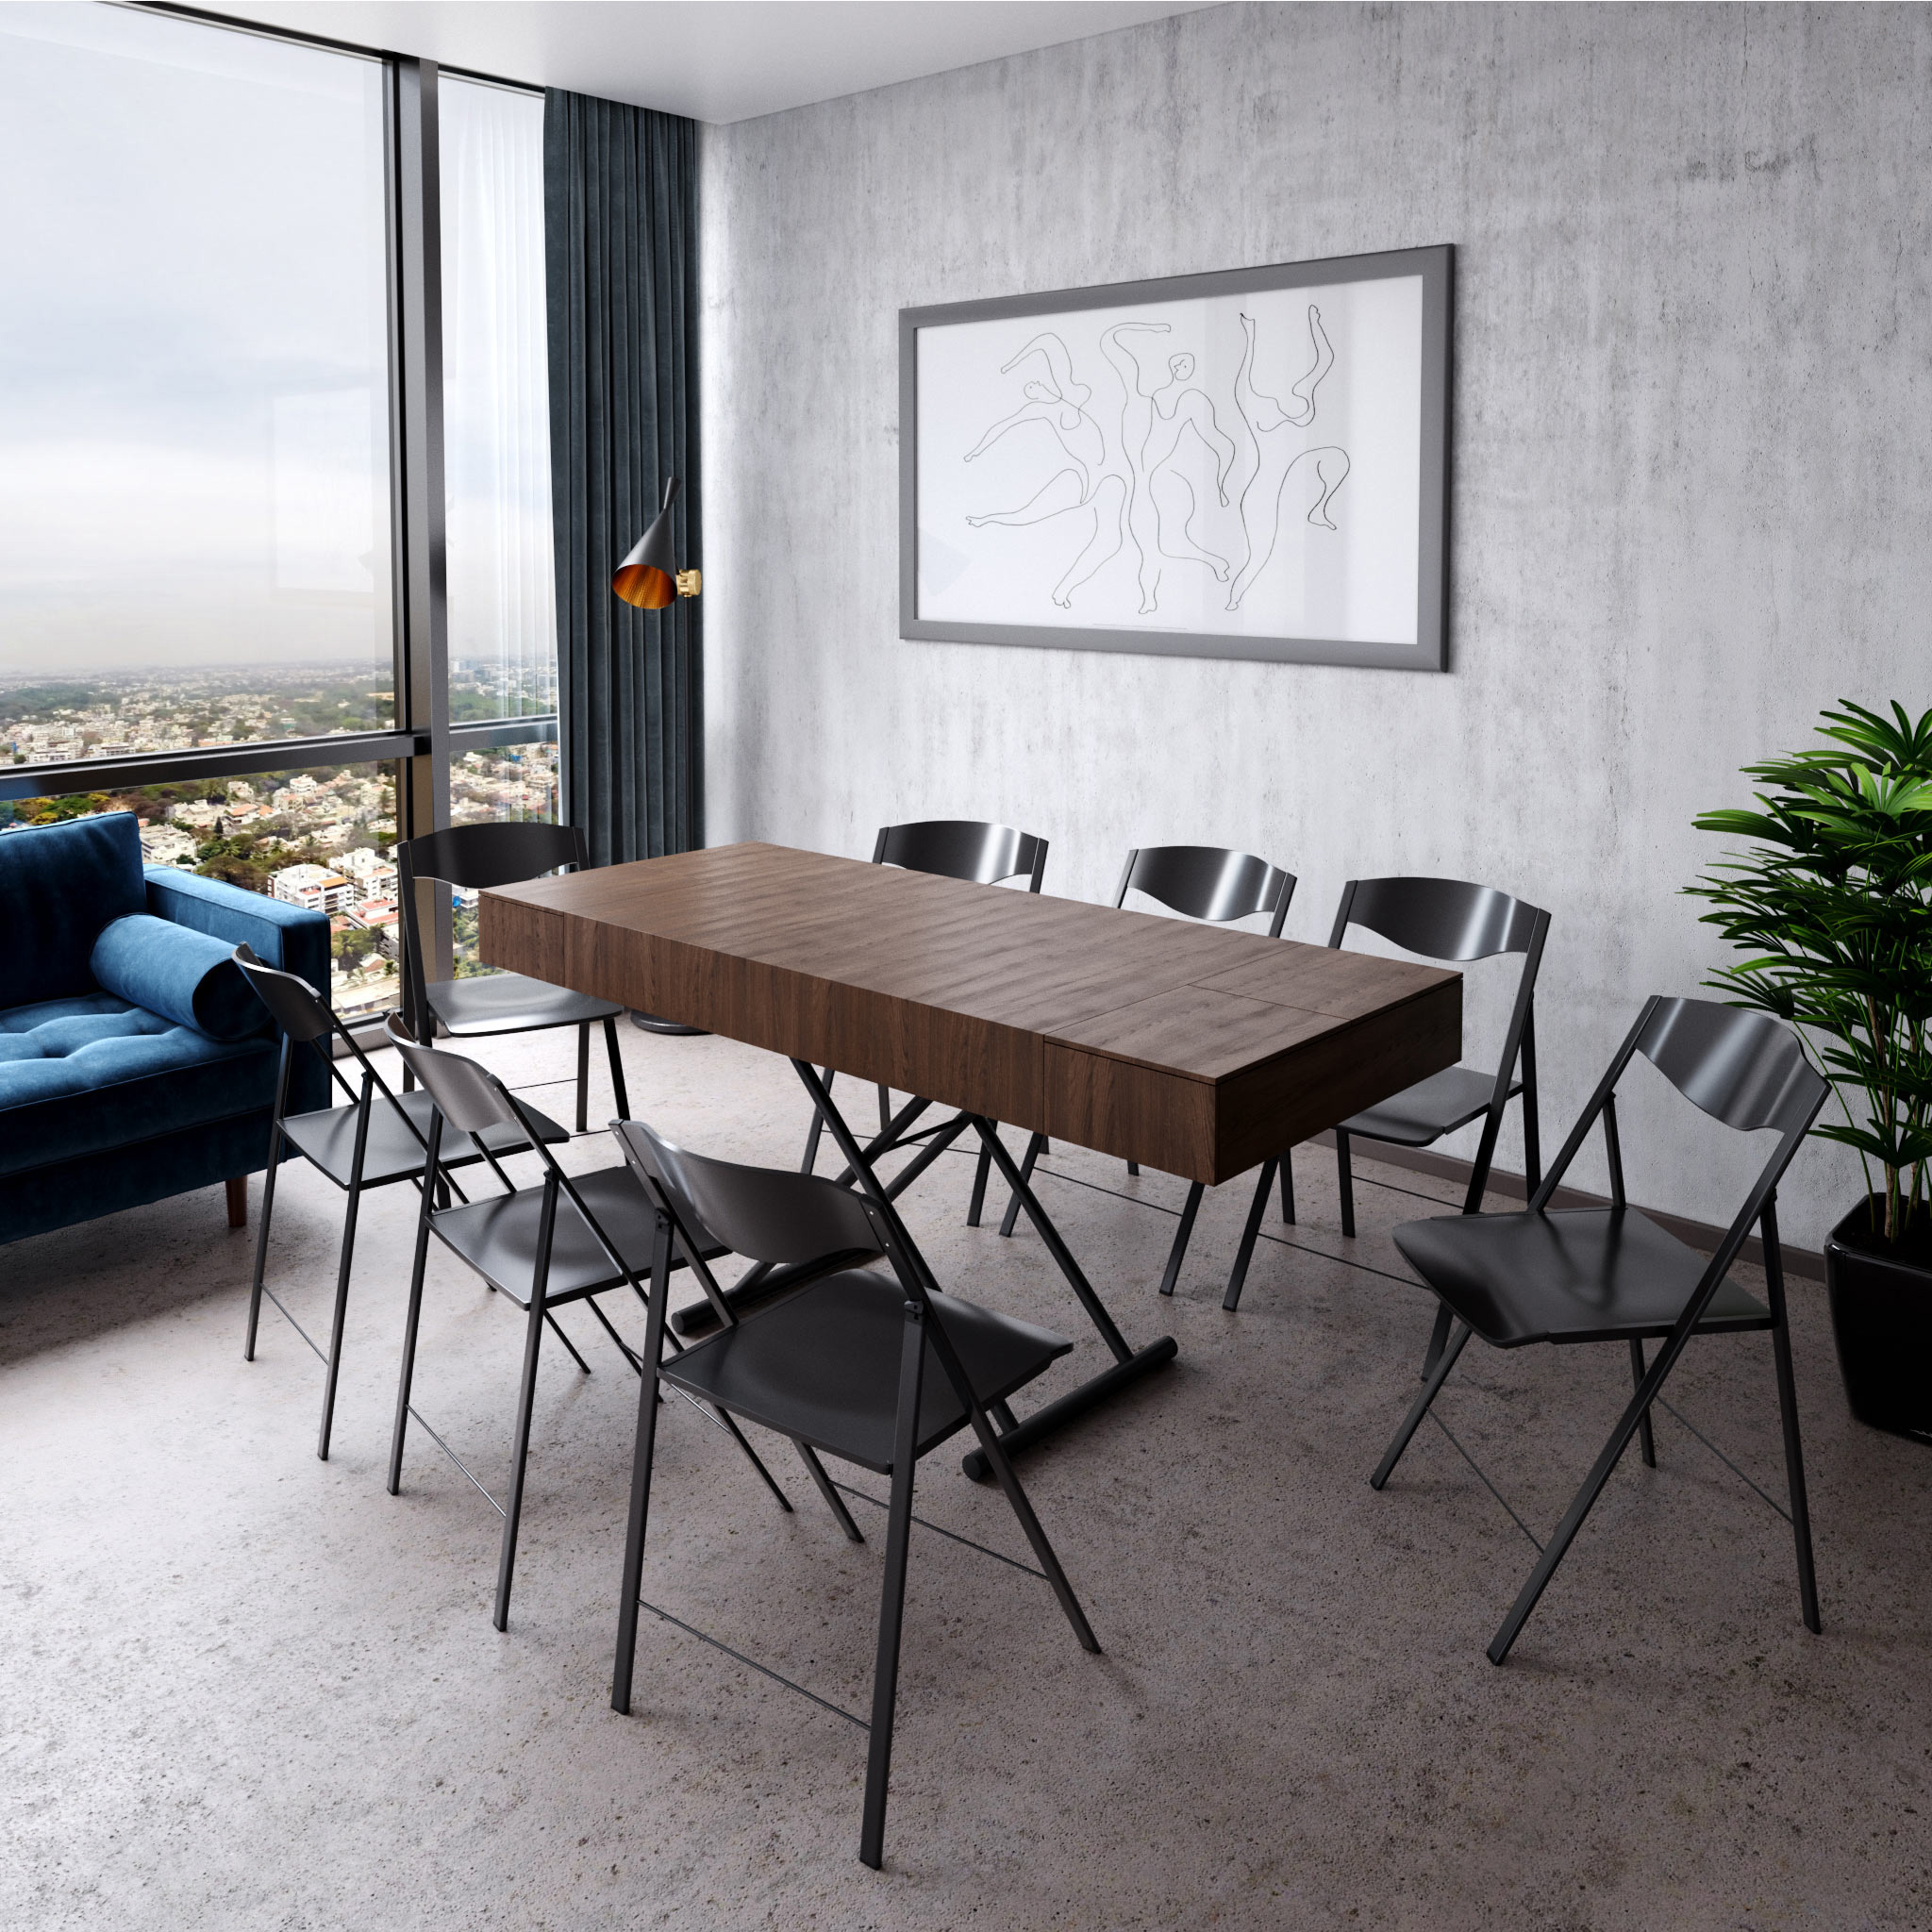 span table coffee to convertible dinner table seating 8 expand furniture folding tables smarter wall beds space savers